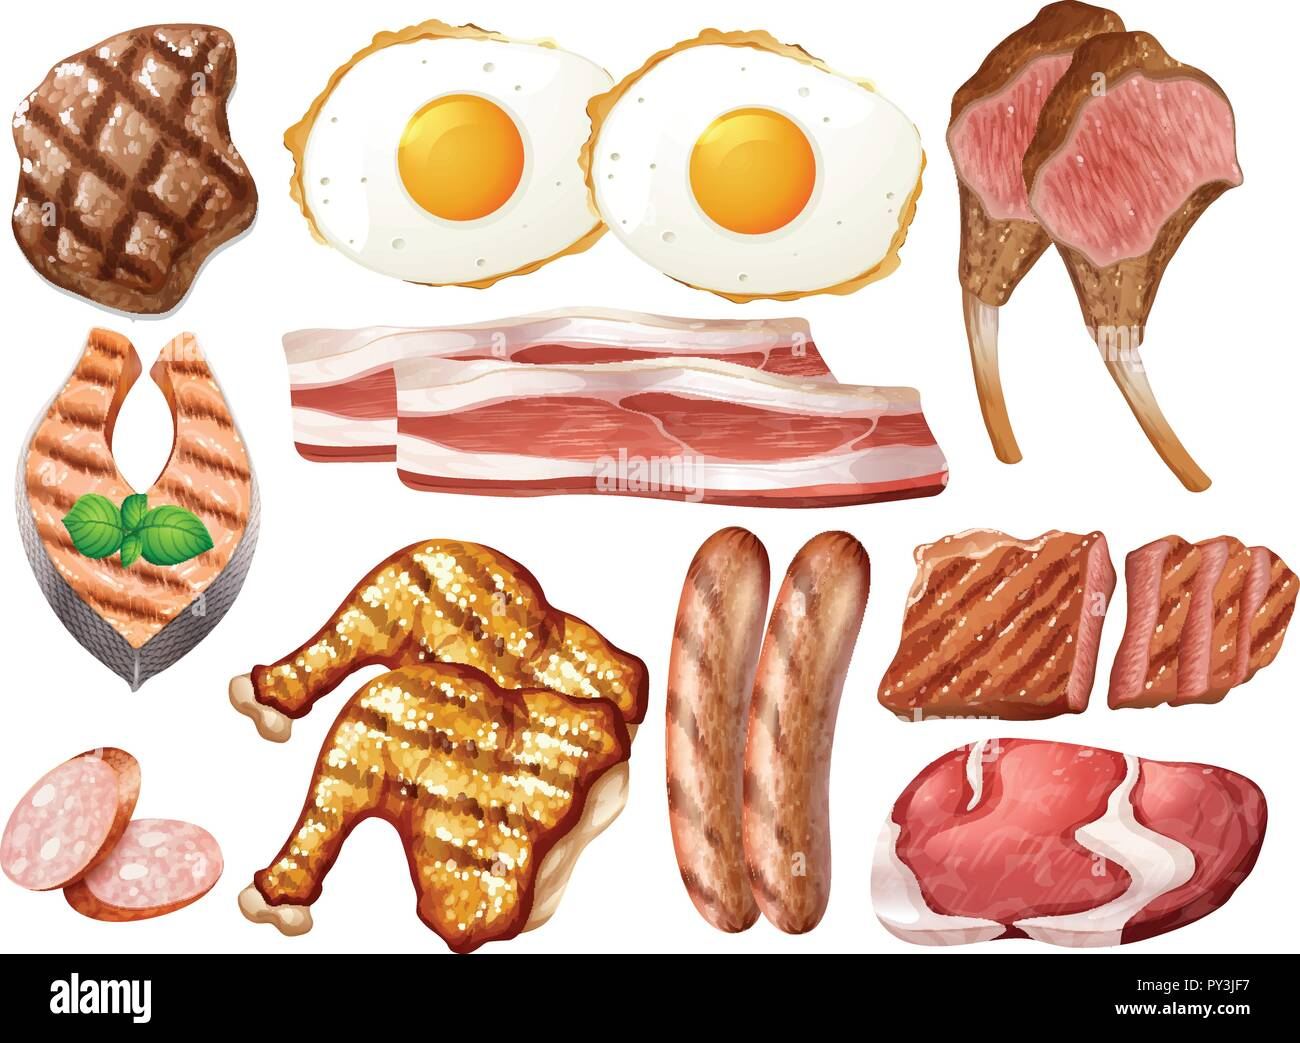 Set of different poultry and meats illustration - Stock Vector